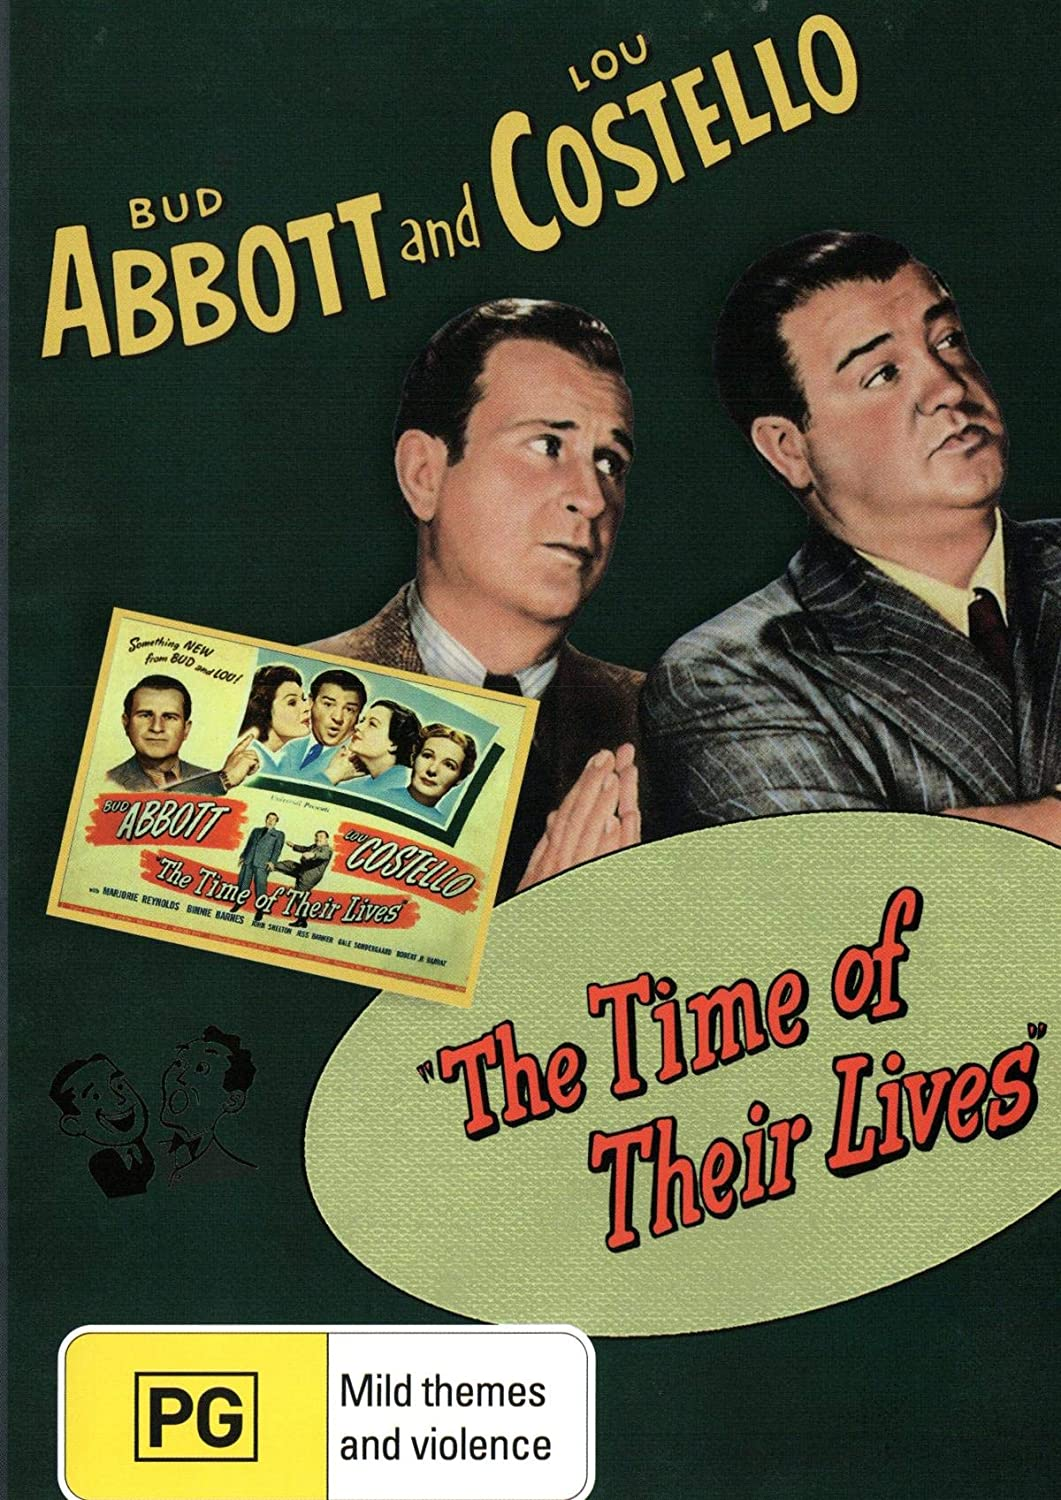 The Time of their Lives (1946) starring Bud Abbott, Lou Costello, Marjorie Reynolds, Binnie Barnes, John Shelton, Gale Sondergaard